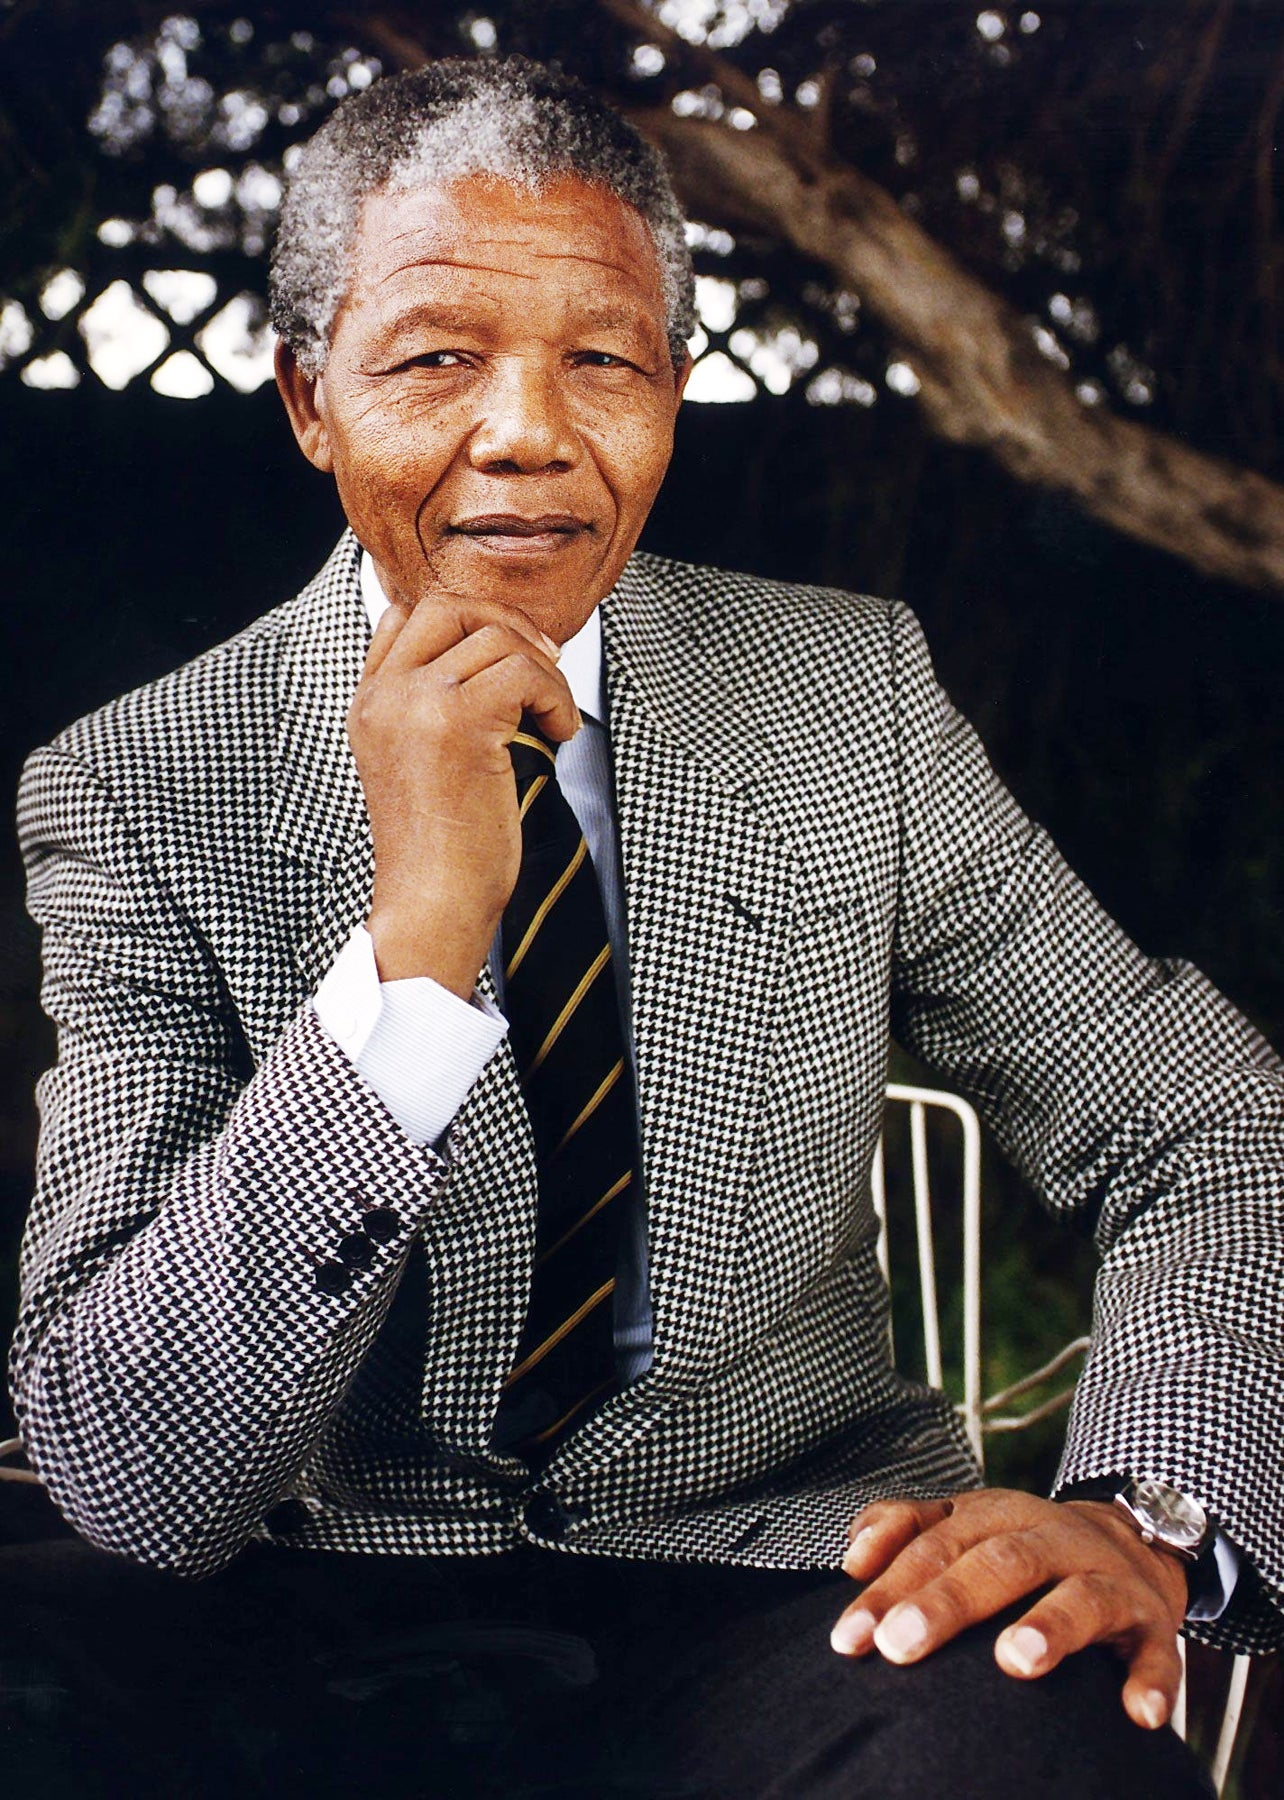 10 Nelson Mandela Quotes That Hit Home In Todays Political Climate